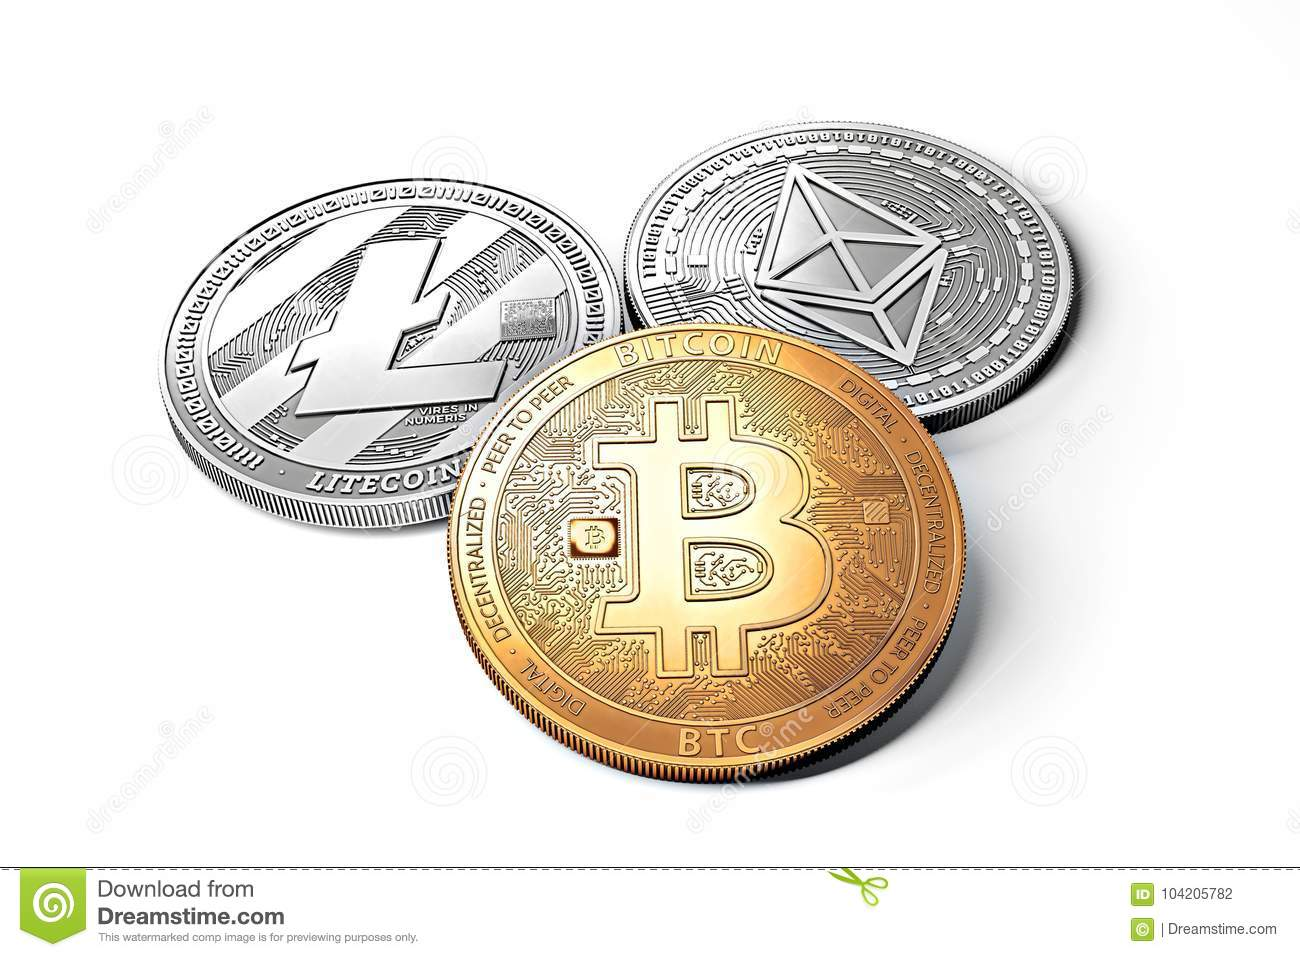 Stack of cryptocurrencies: bitcoin, ethereum, litecoin, monero, dash, and ripple coin together